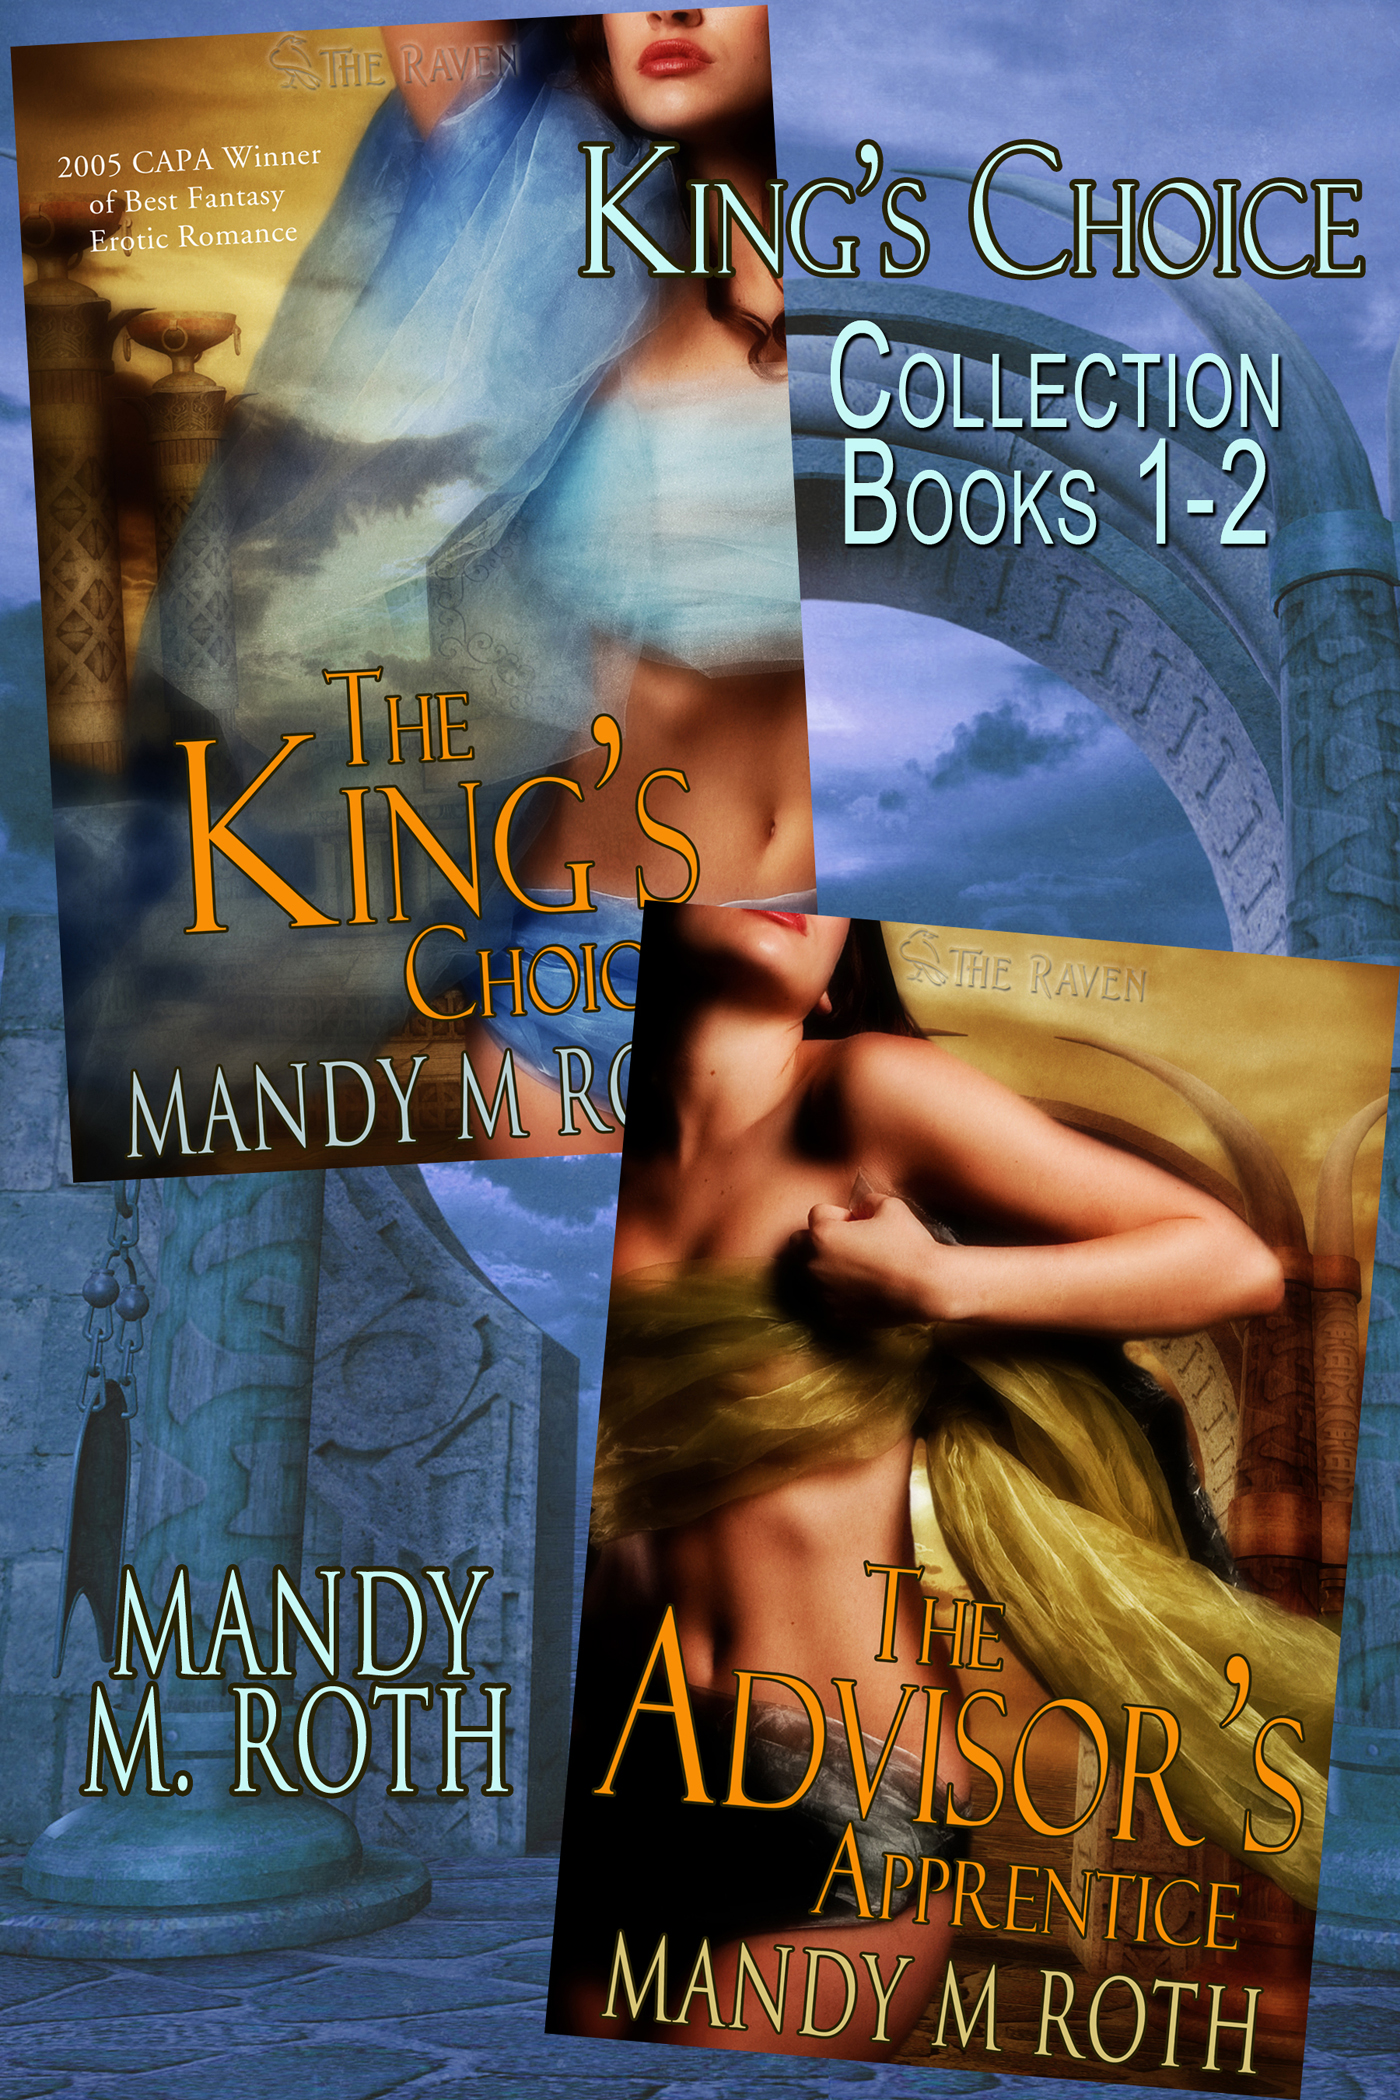 Mandy M. Roth - King's Choice Collection Books 1-2